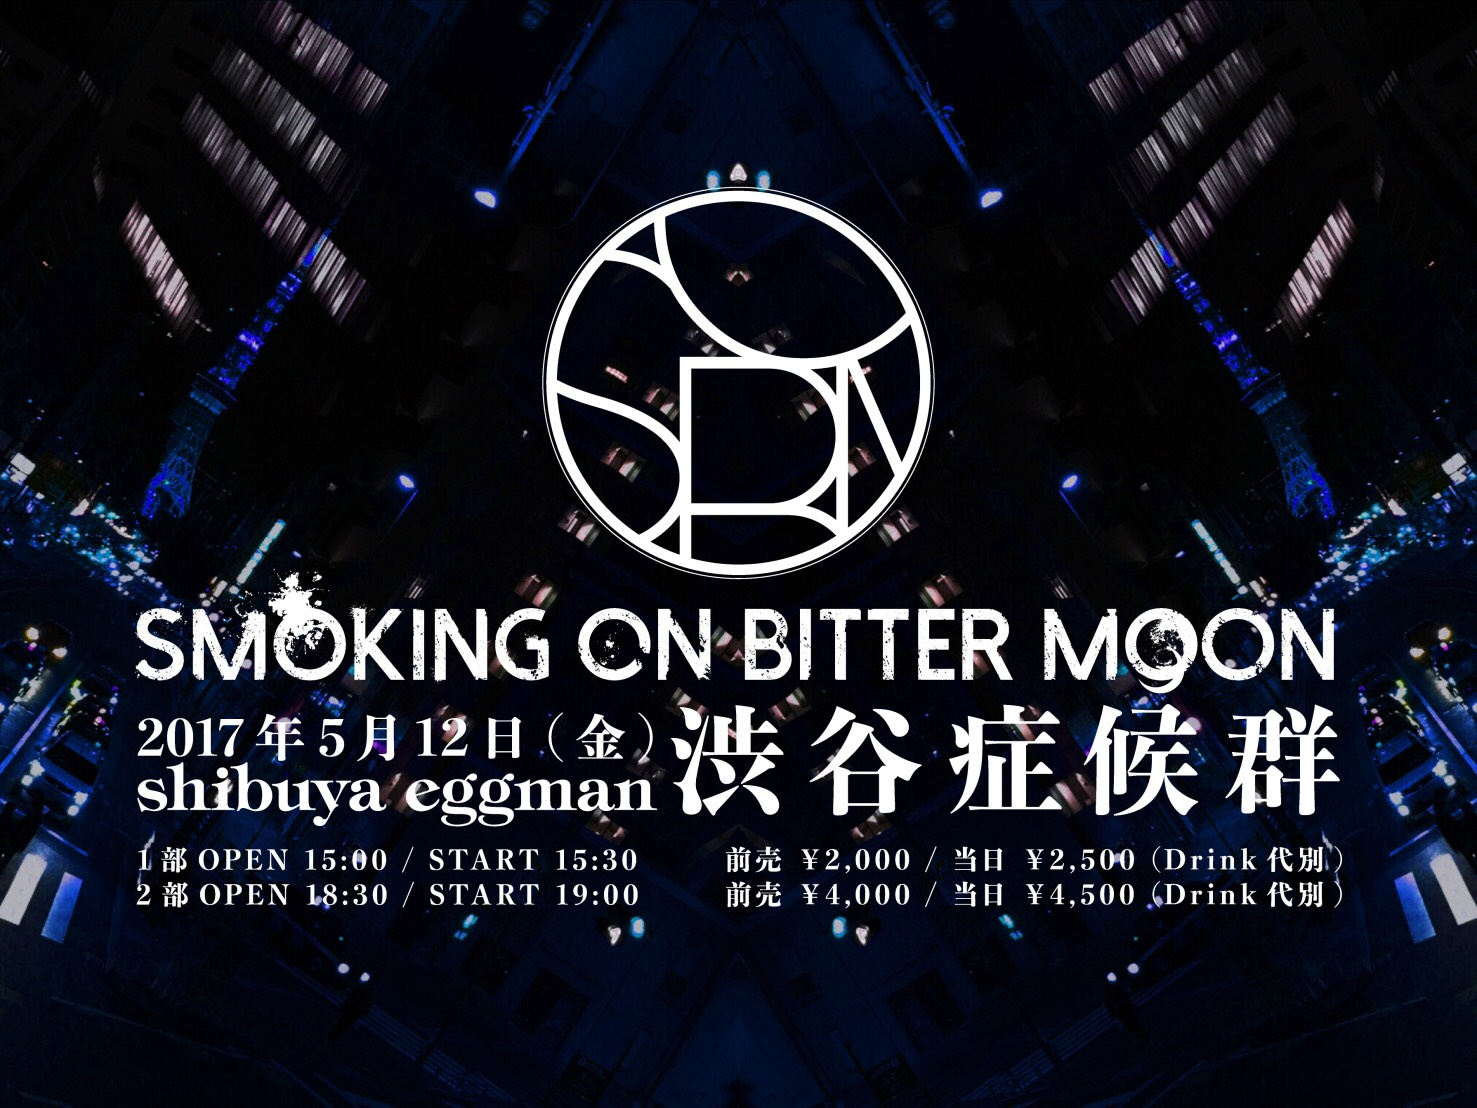 SMOKING ON BITTER MOON「渋谷症候群」